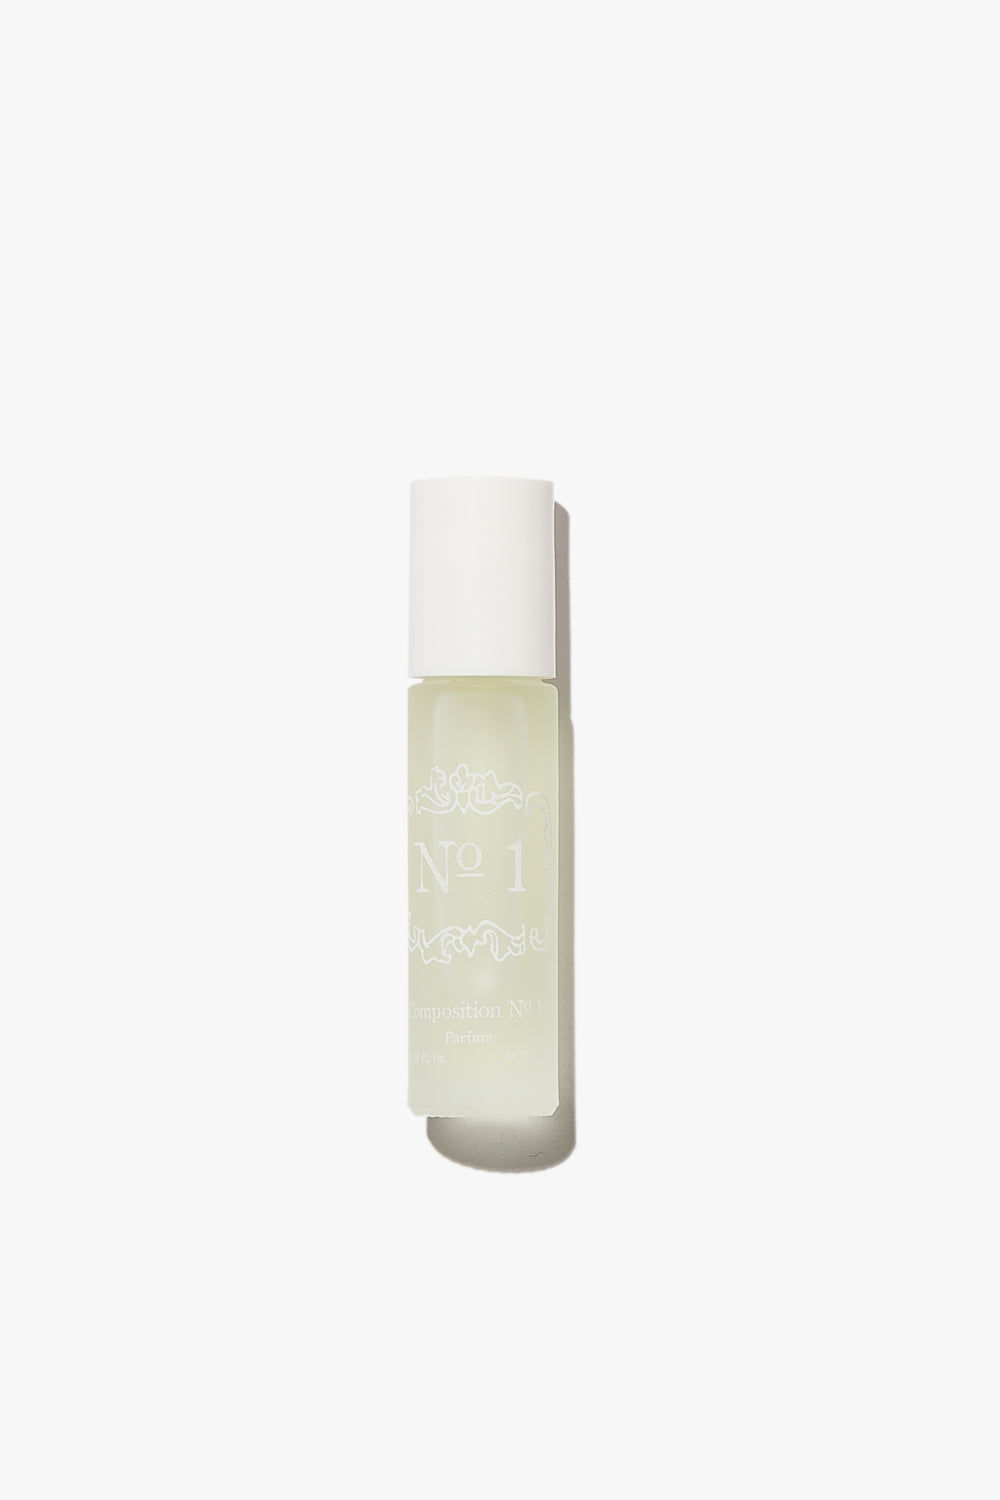 Roll-on Parfum, Composition No. 1